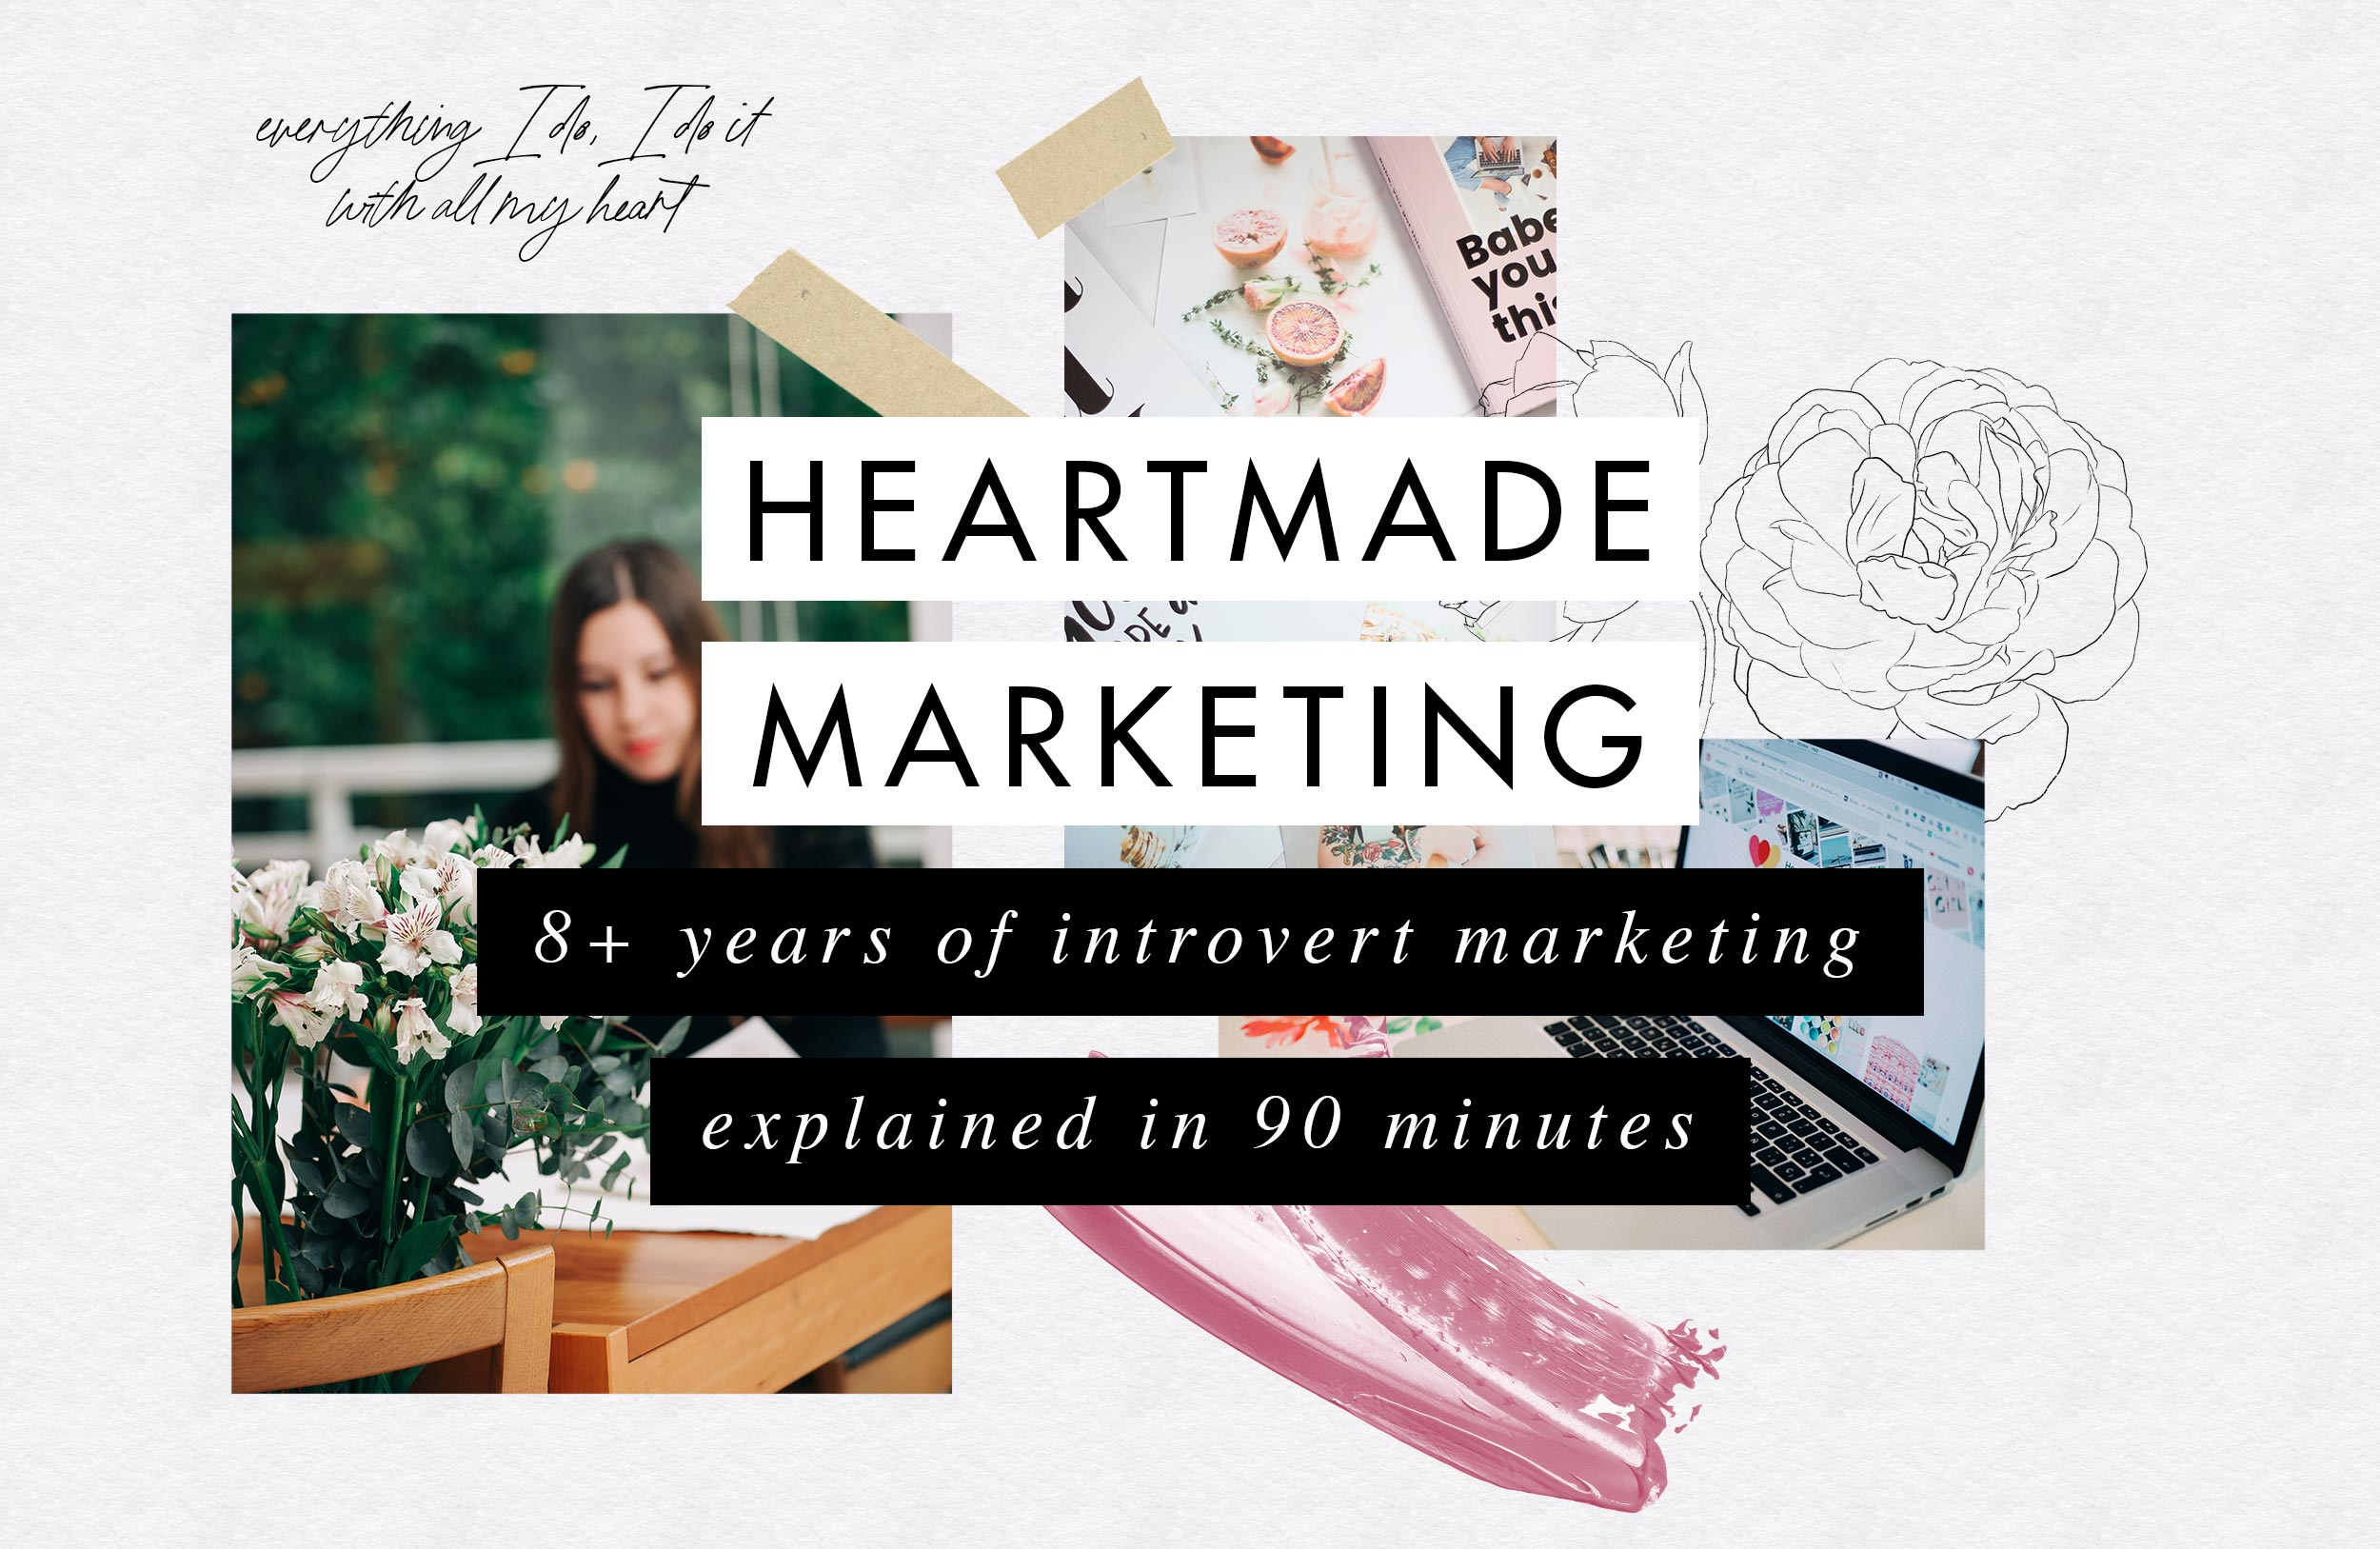 Heartmade Marketing: 90 minute online class teaching 8+ years of introvert marketing